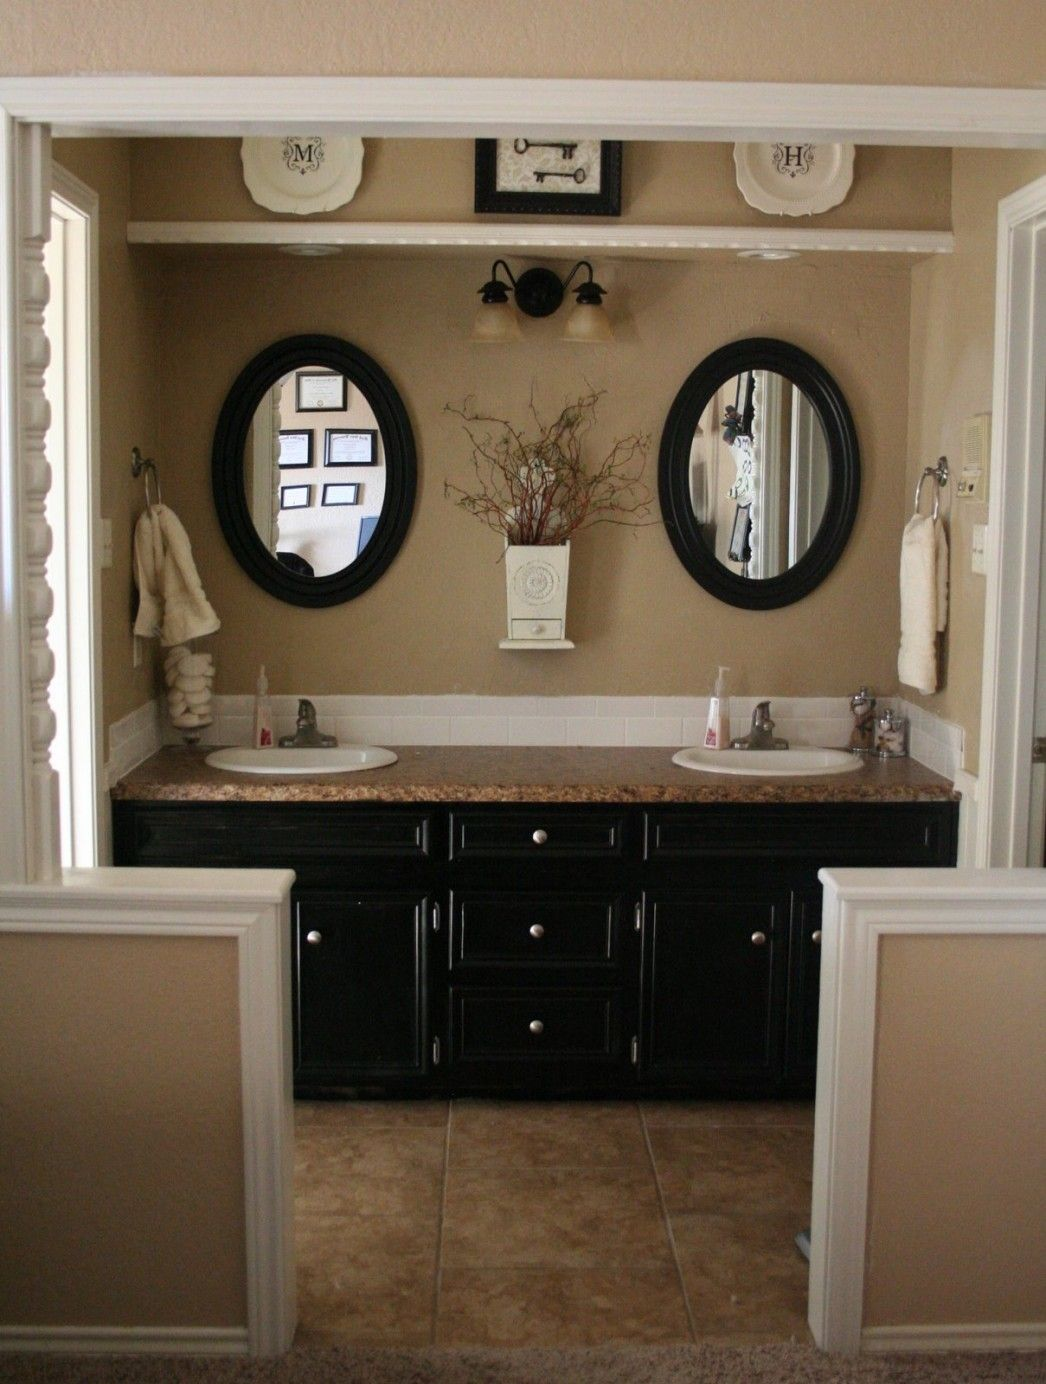 Master bathroom color ideas - Bathroom Paint Color Ideas With Khaki Paint And